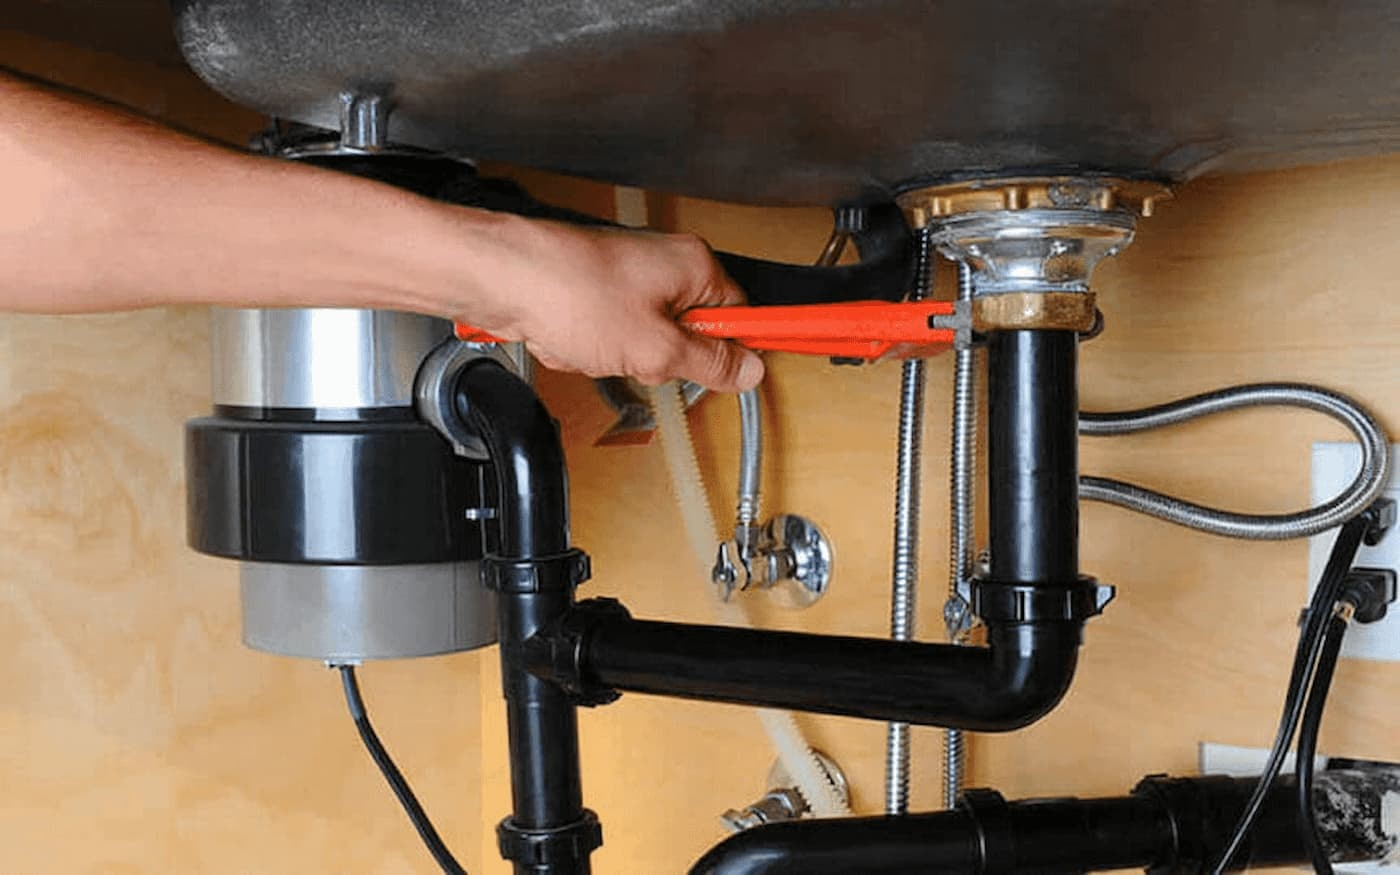 Simple Fixes for the Garbage Disposal